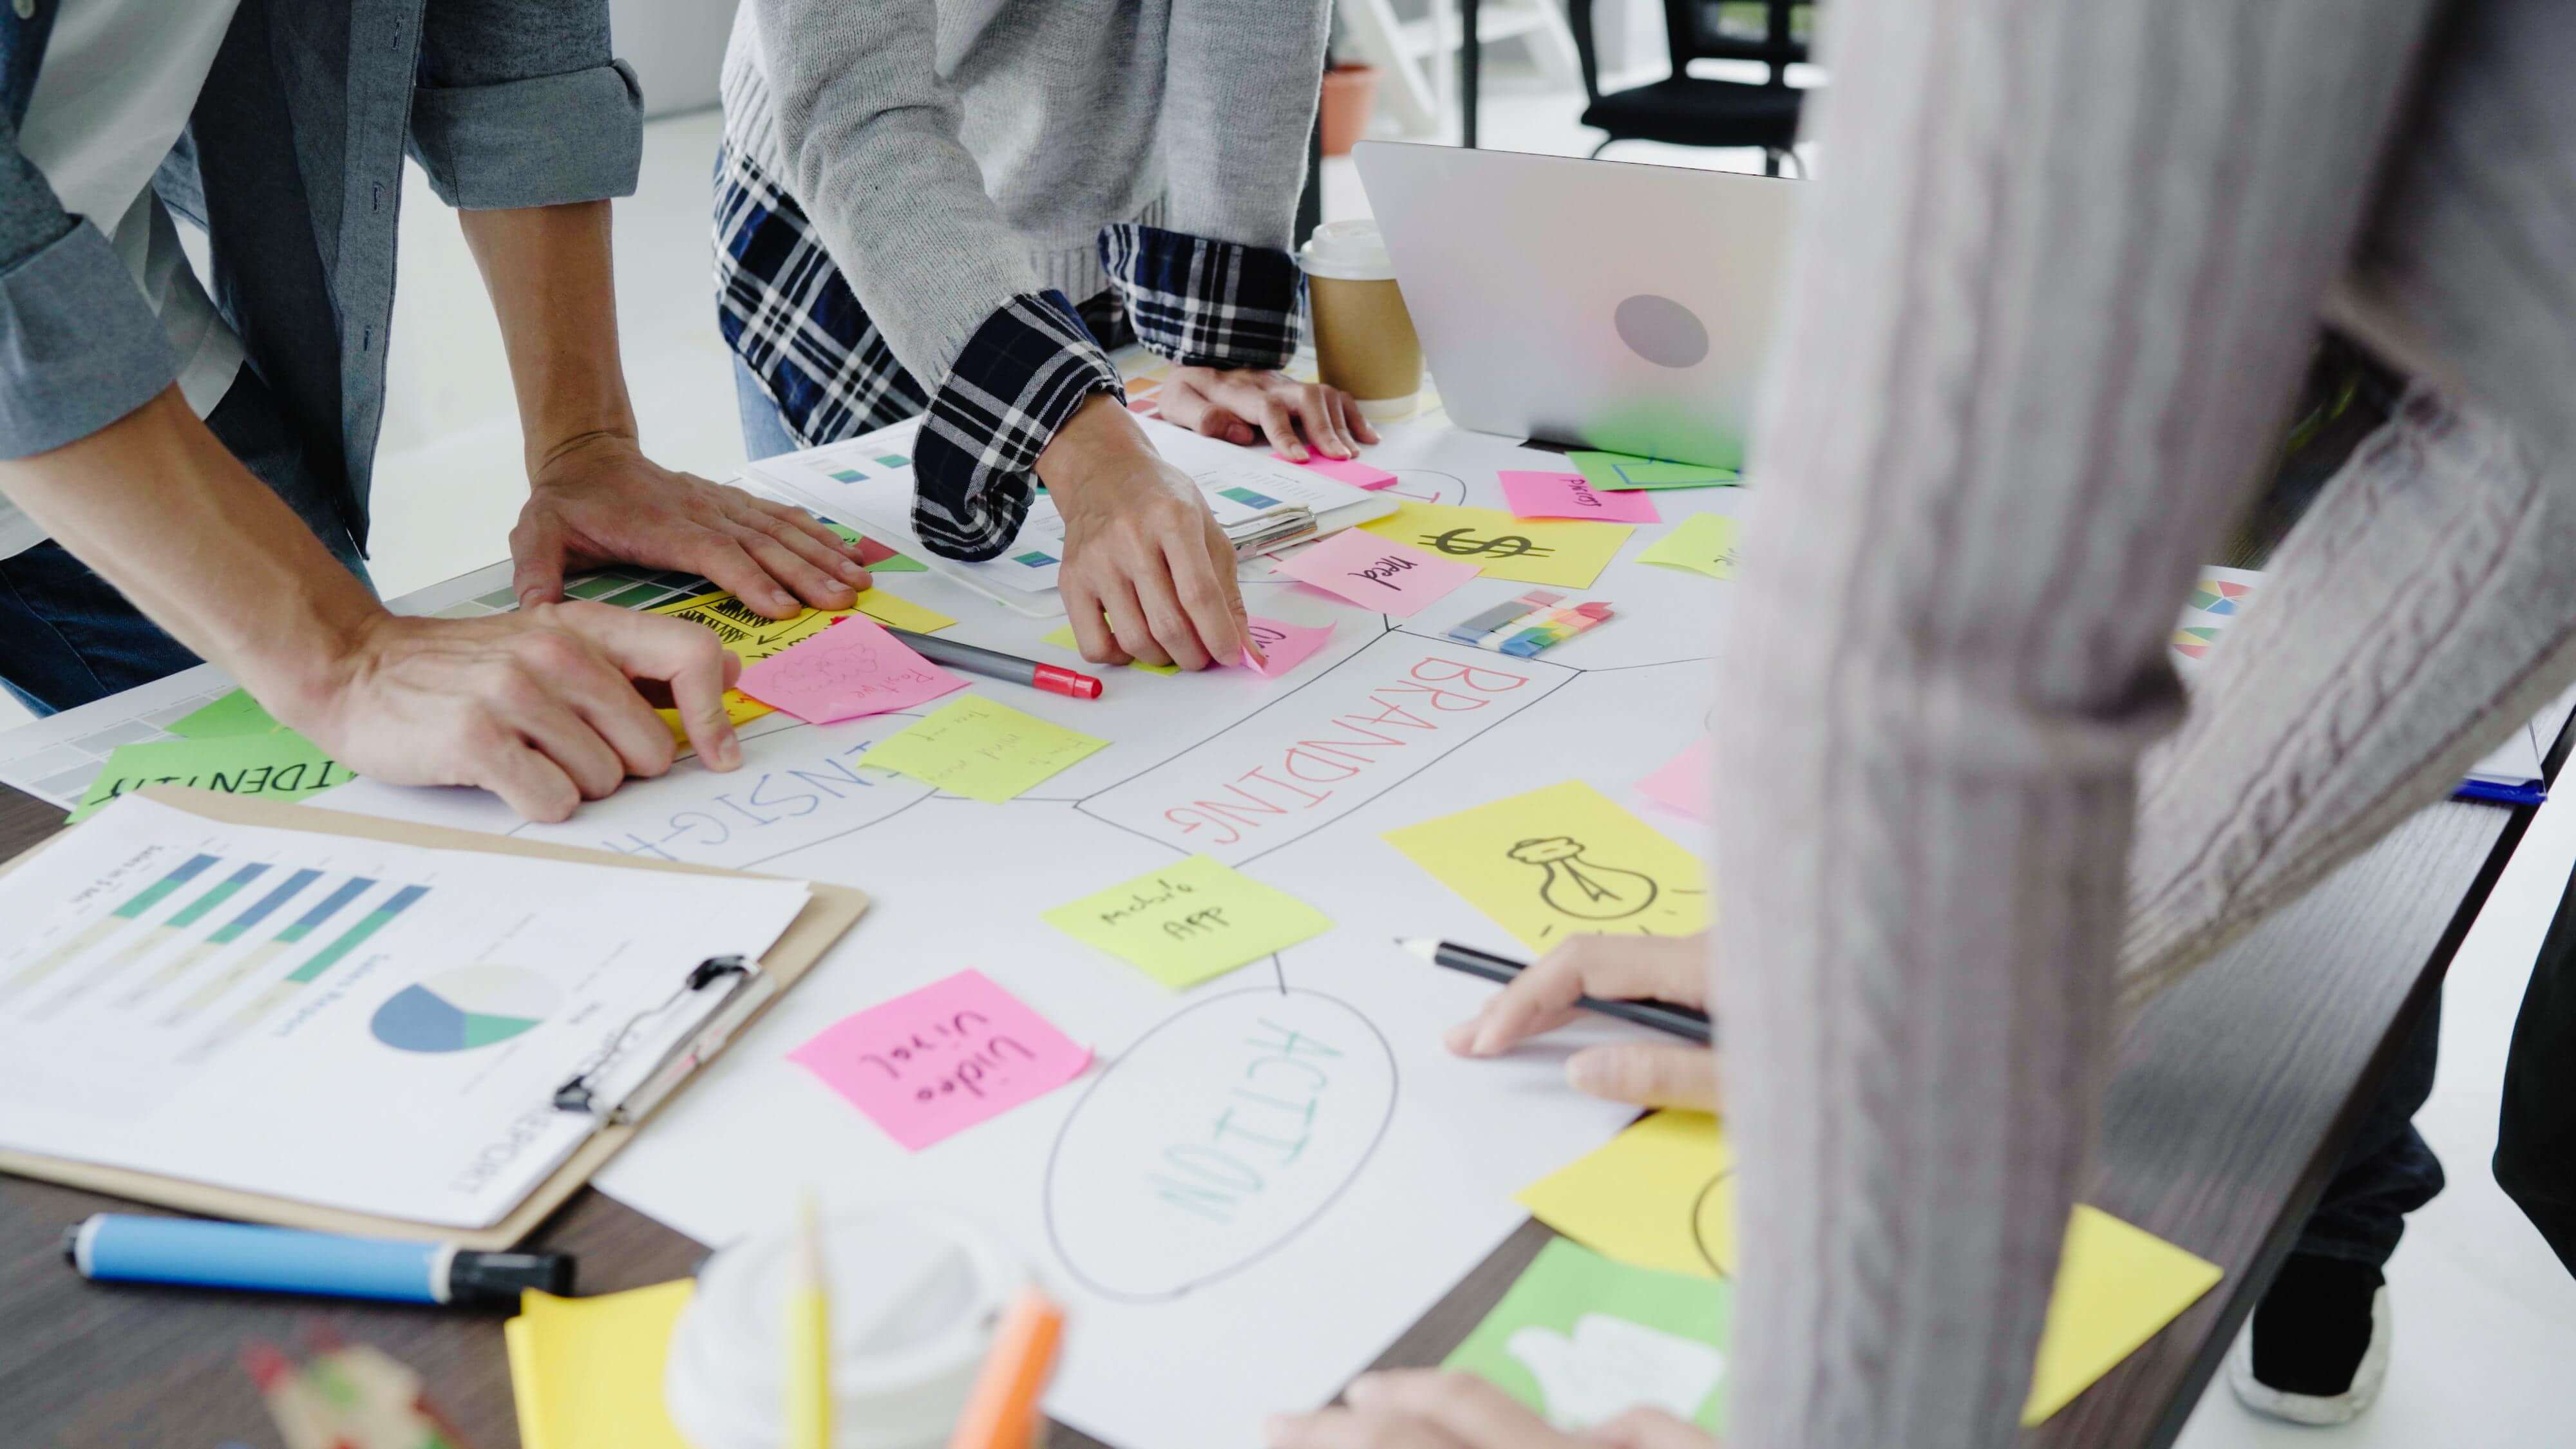 What to Look for in a B2B Marketing Agency